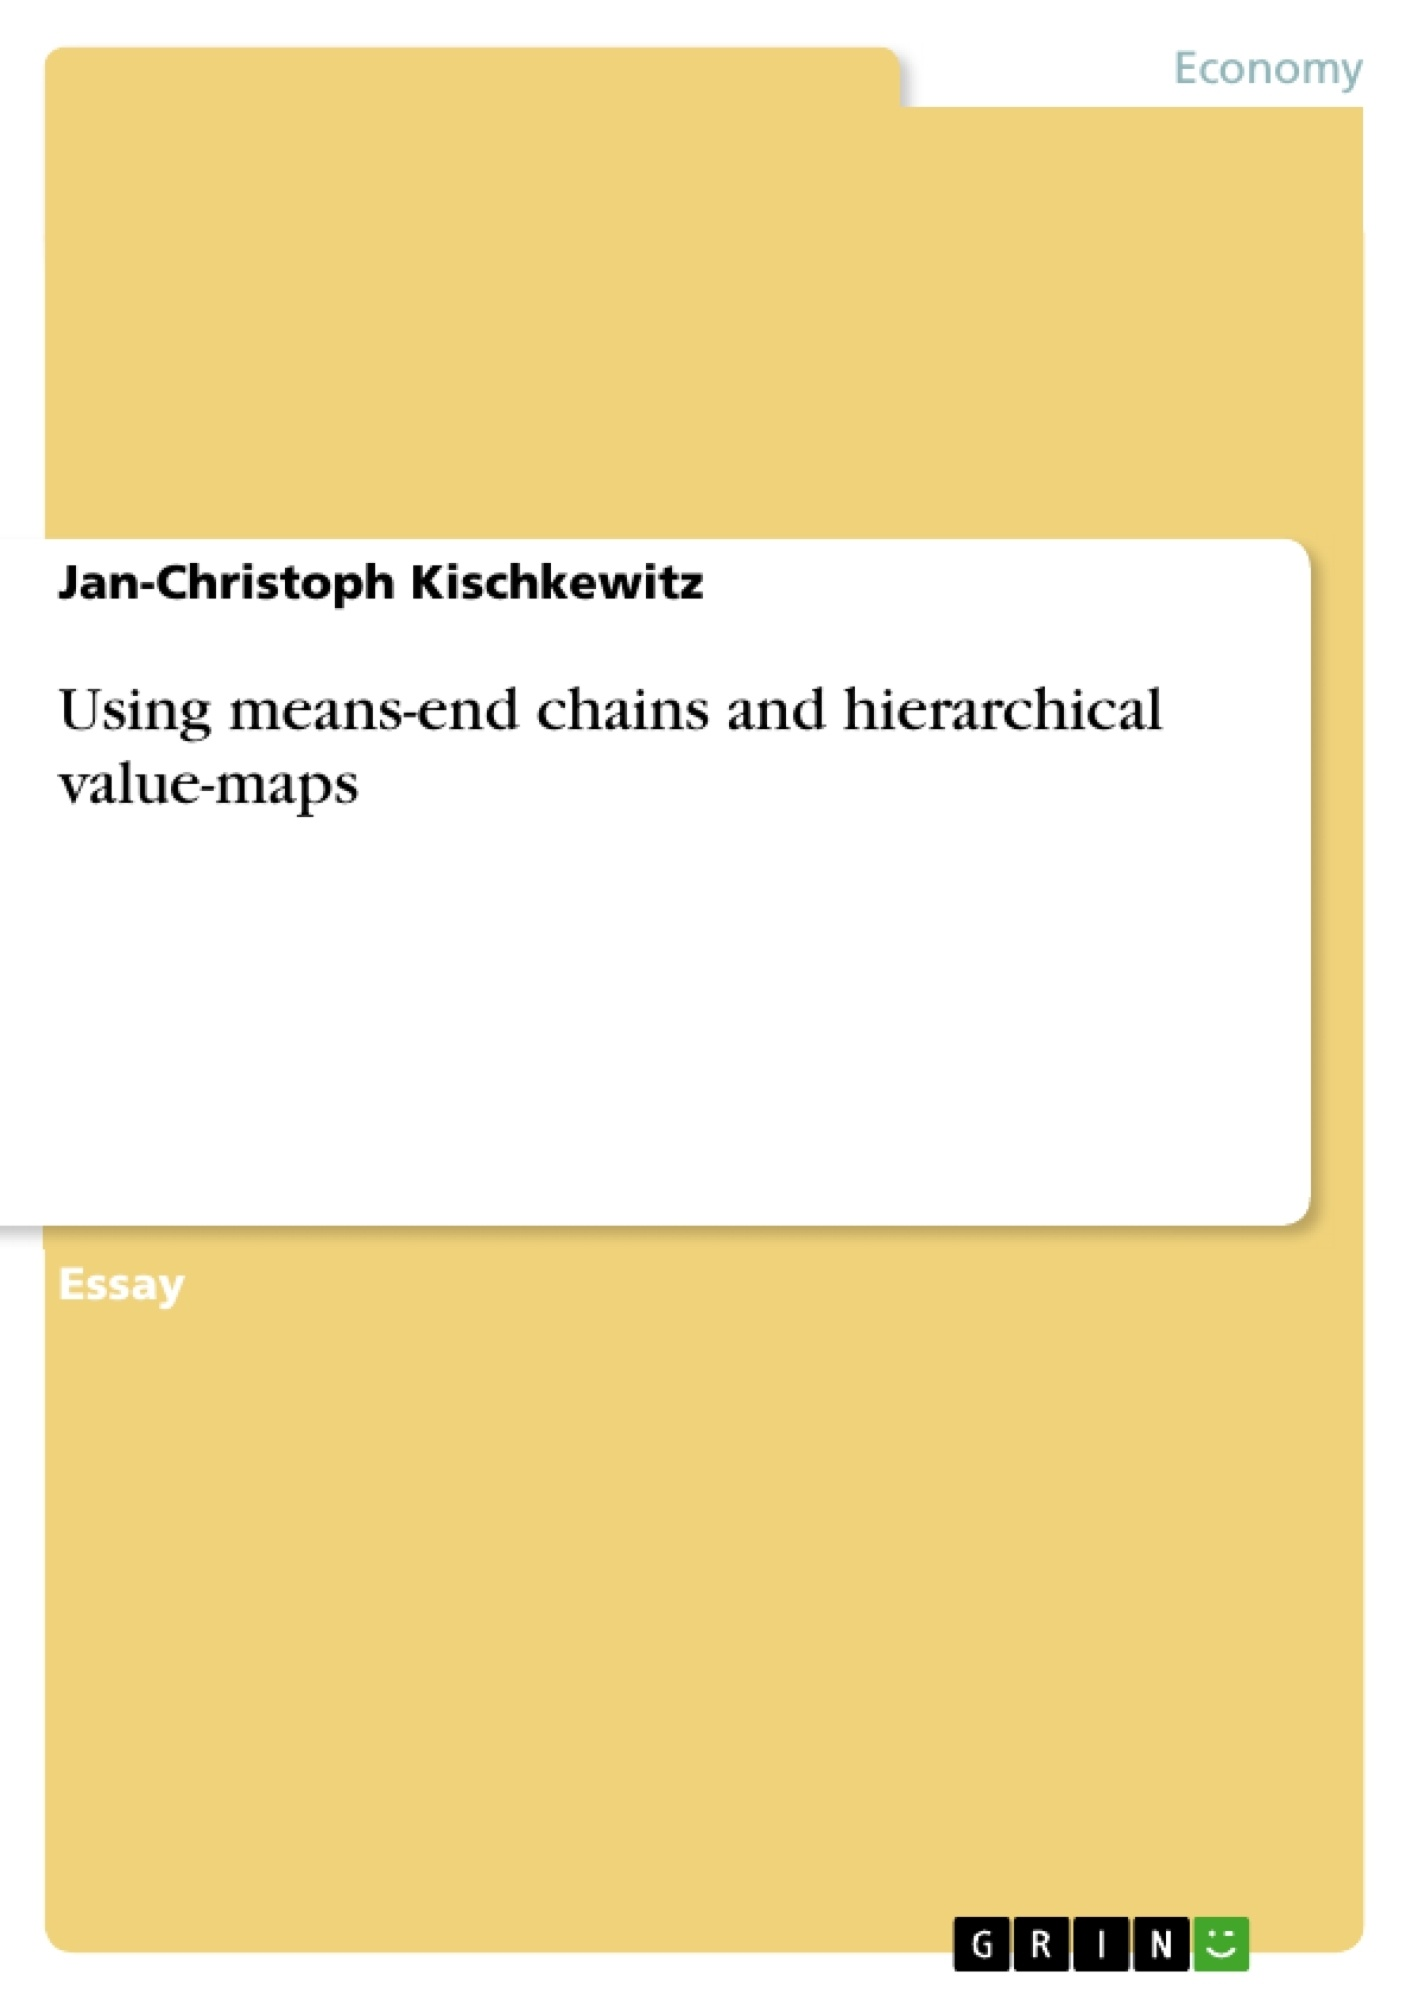 Title: Using means-end chains and hierarchical value-maps